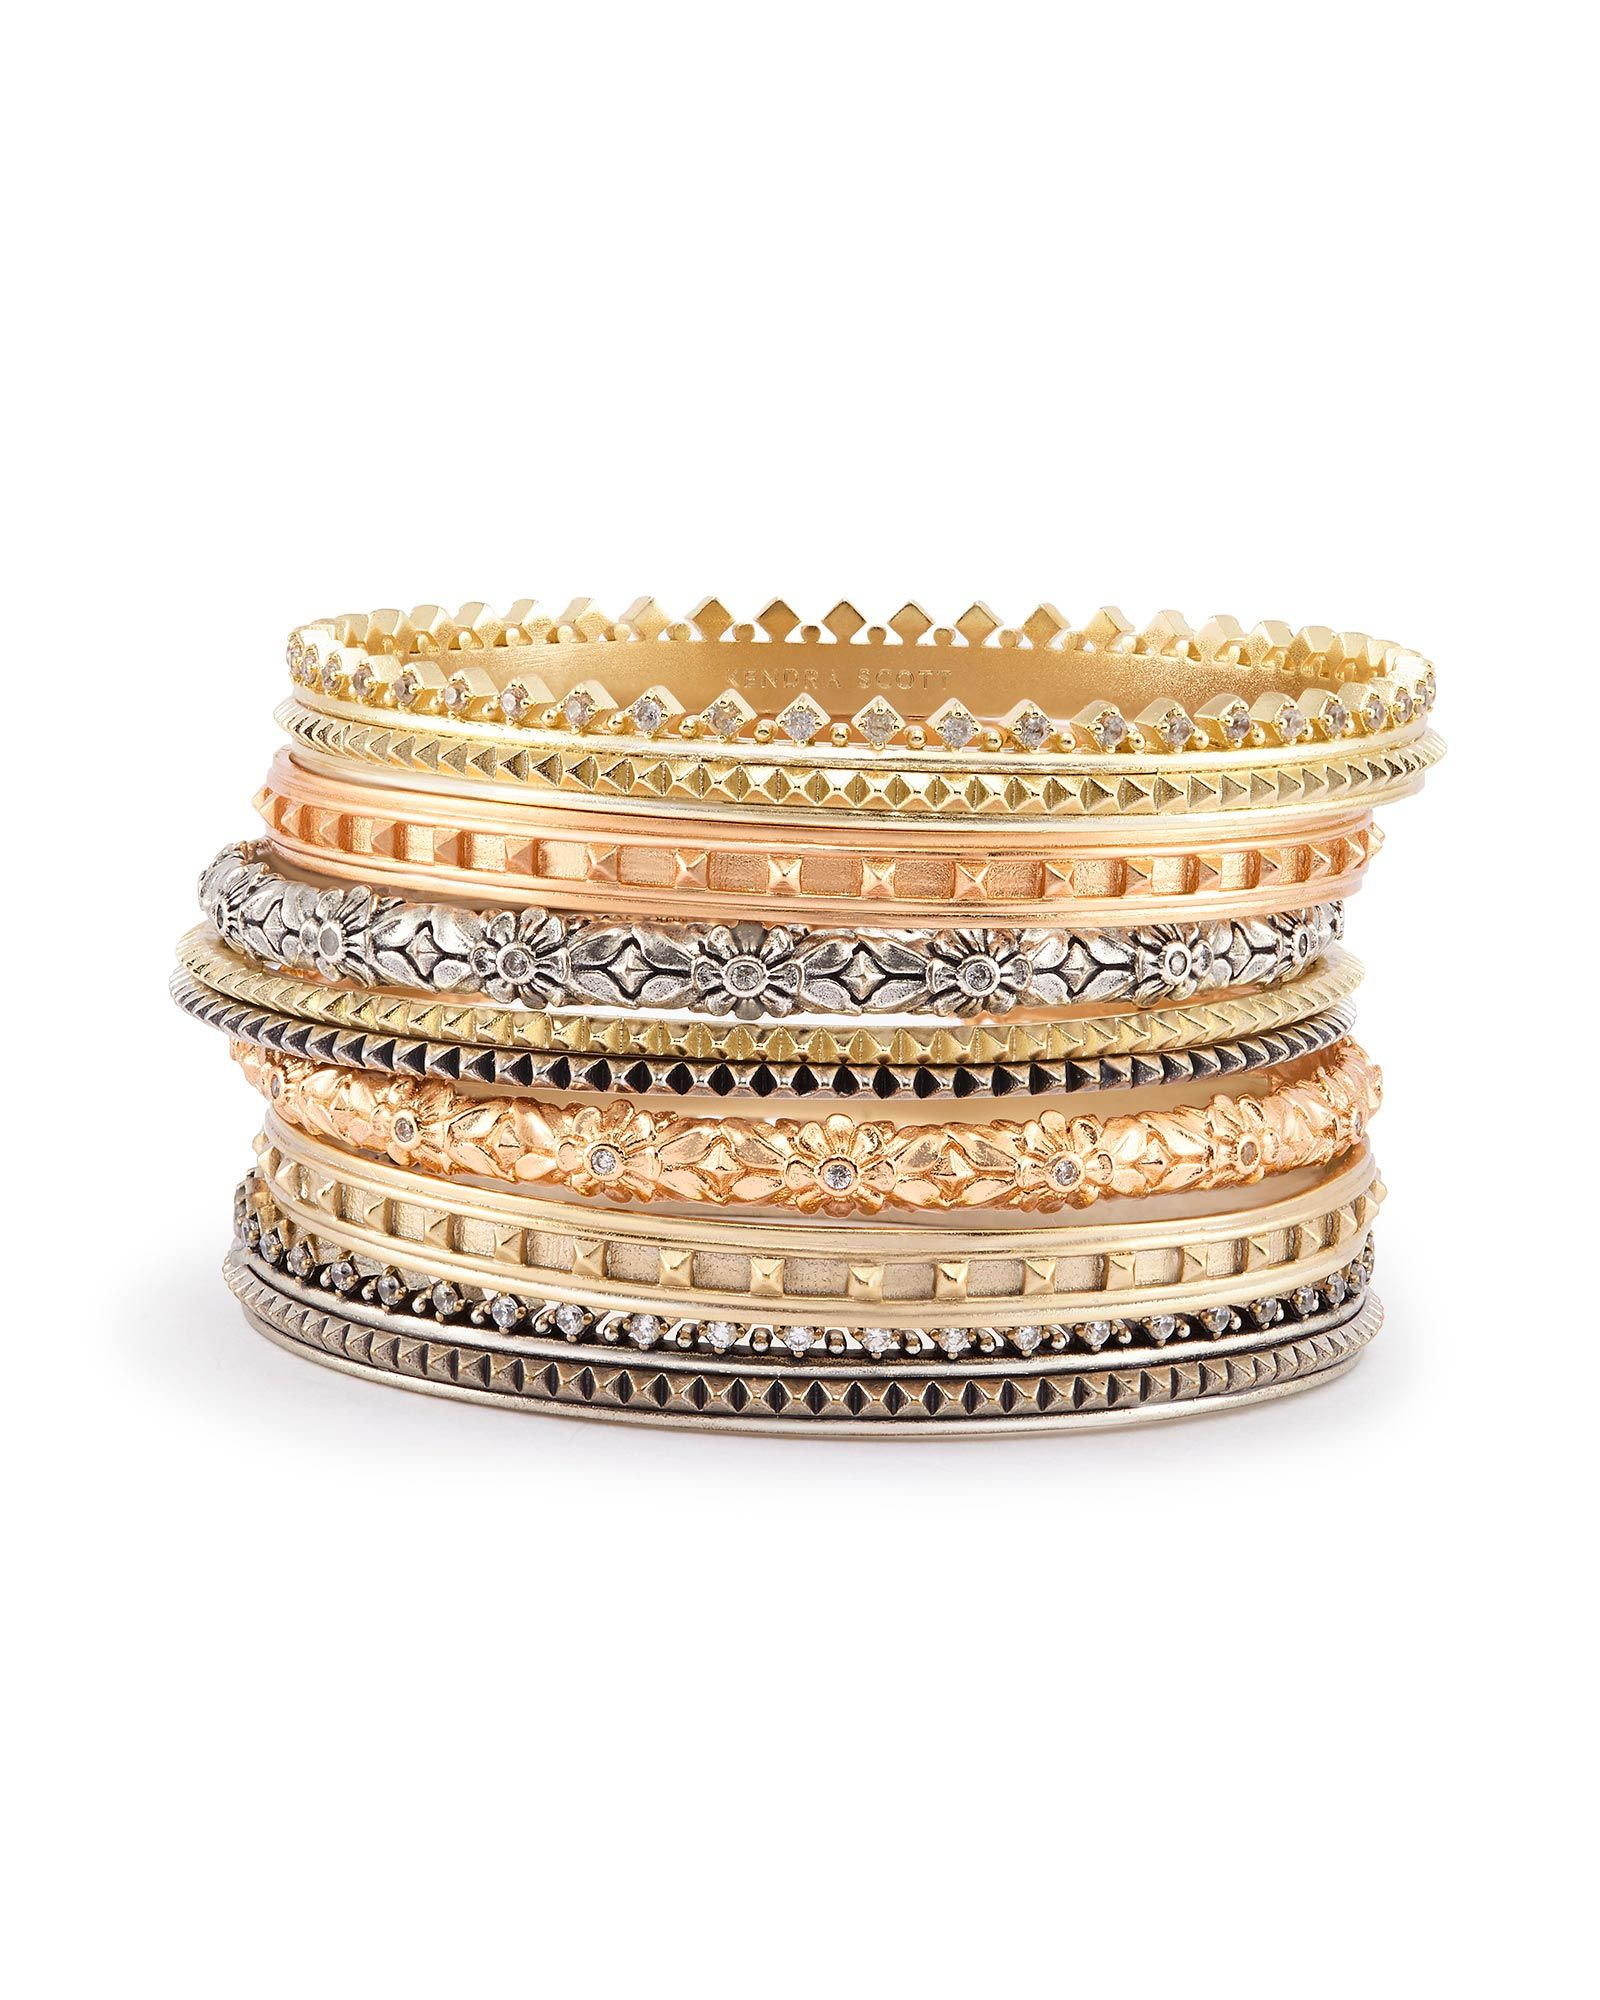 Our Selection Of Tail Rings And Gold Bangle Bracelet Sets At Kendra Scott Mix Match To Create Your Stylish Trendy New Look